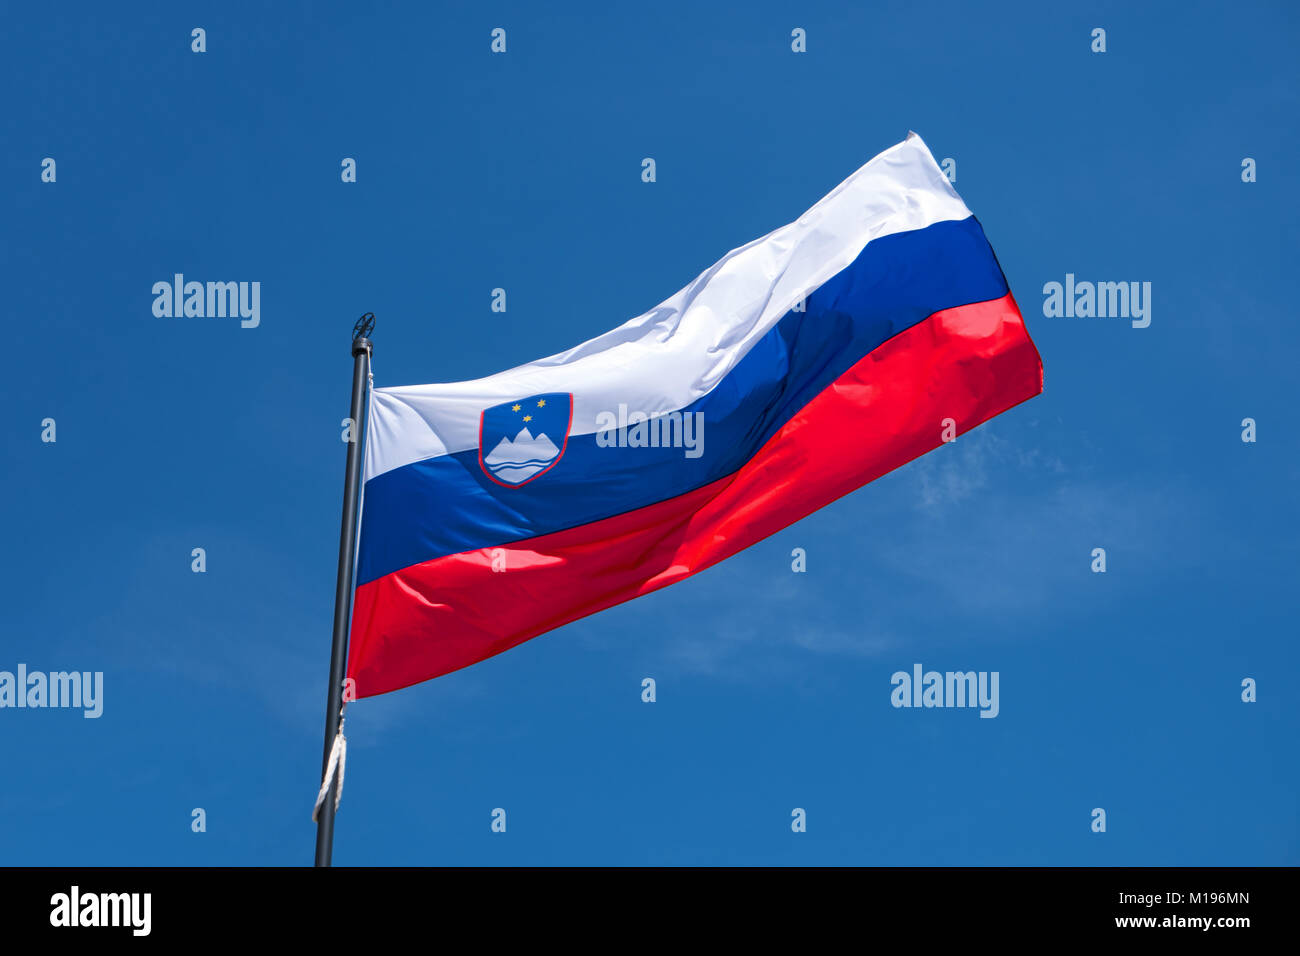 Flag of Slovenia on flagpole waving in the wind. Slovenian national official flag on blue sky background. Patriotic Stock Photo